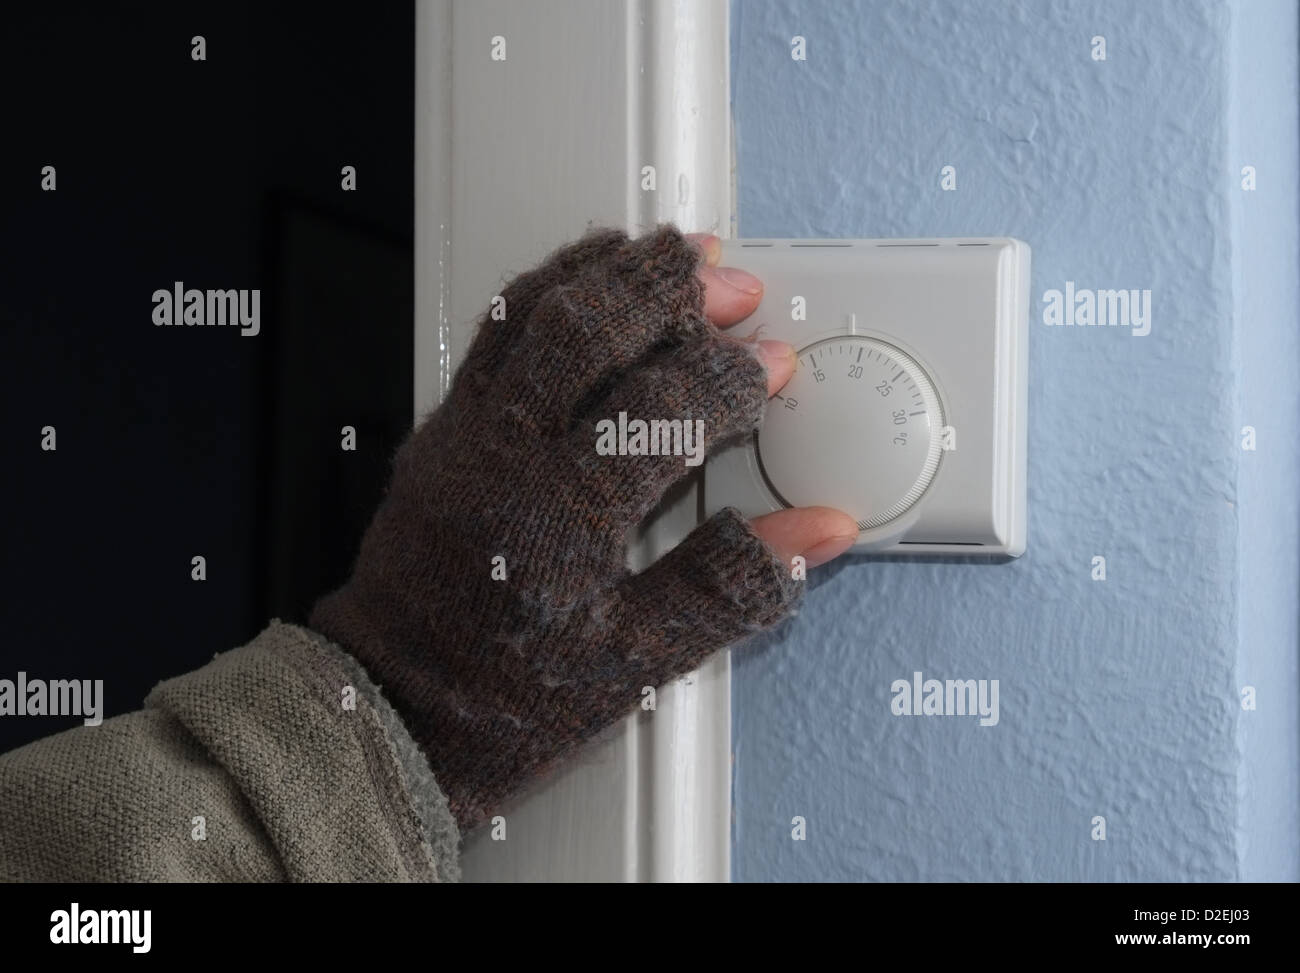 Austerity - turning down temperature on domestic central heating thermostat - Stock Image